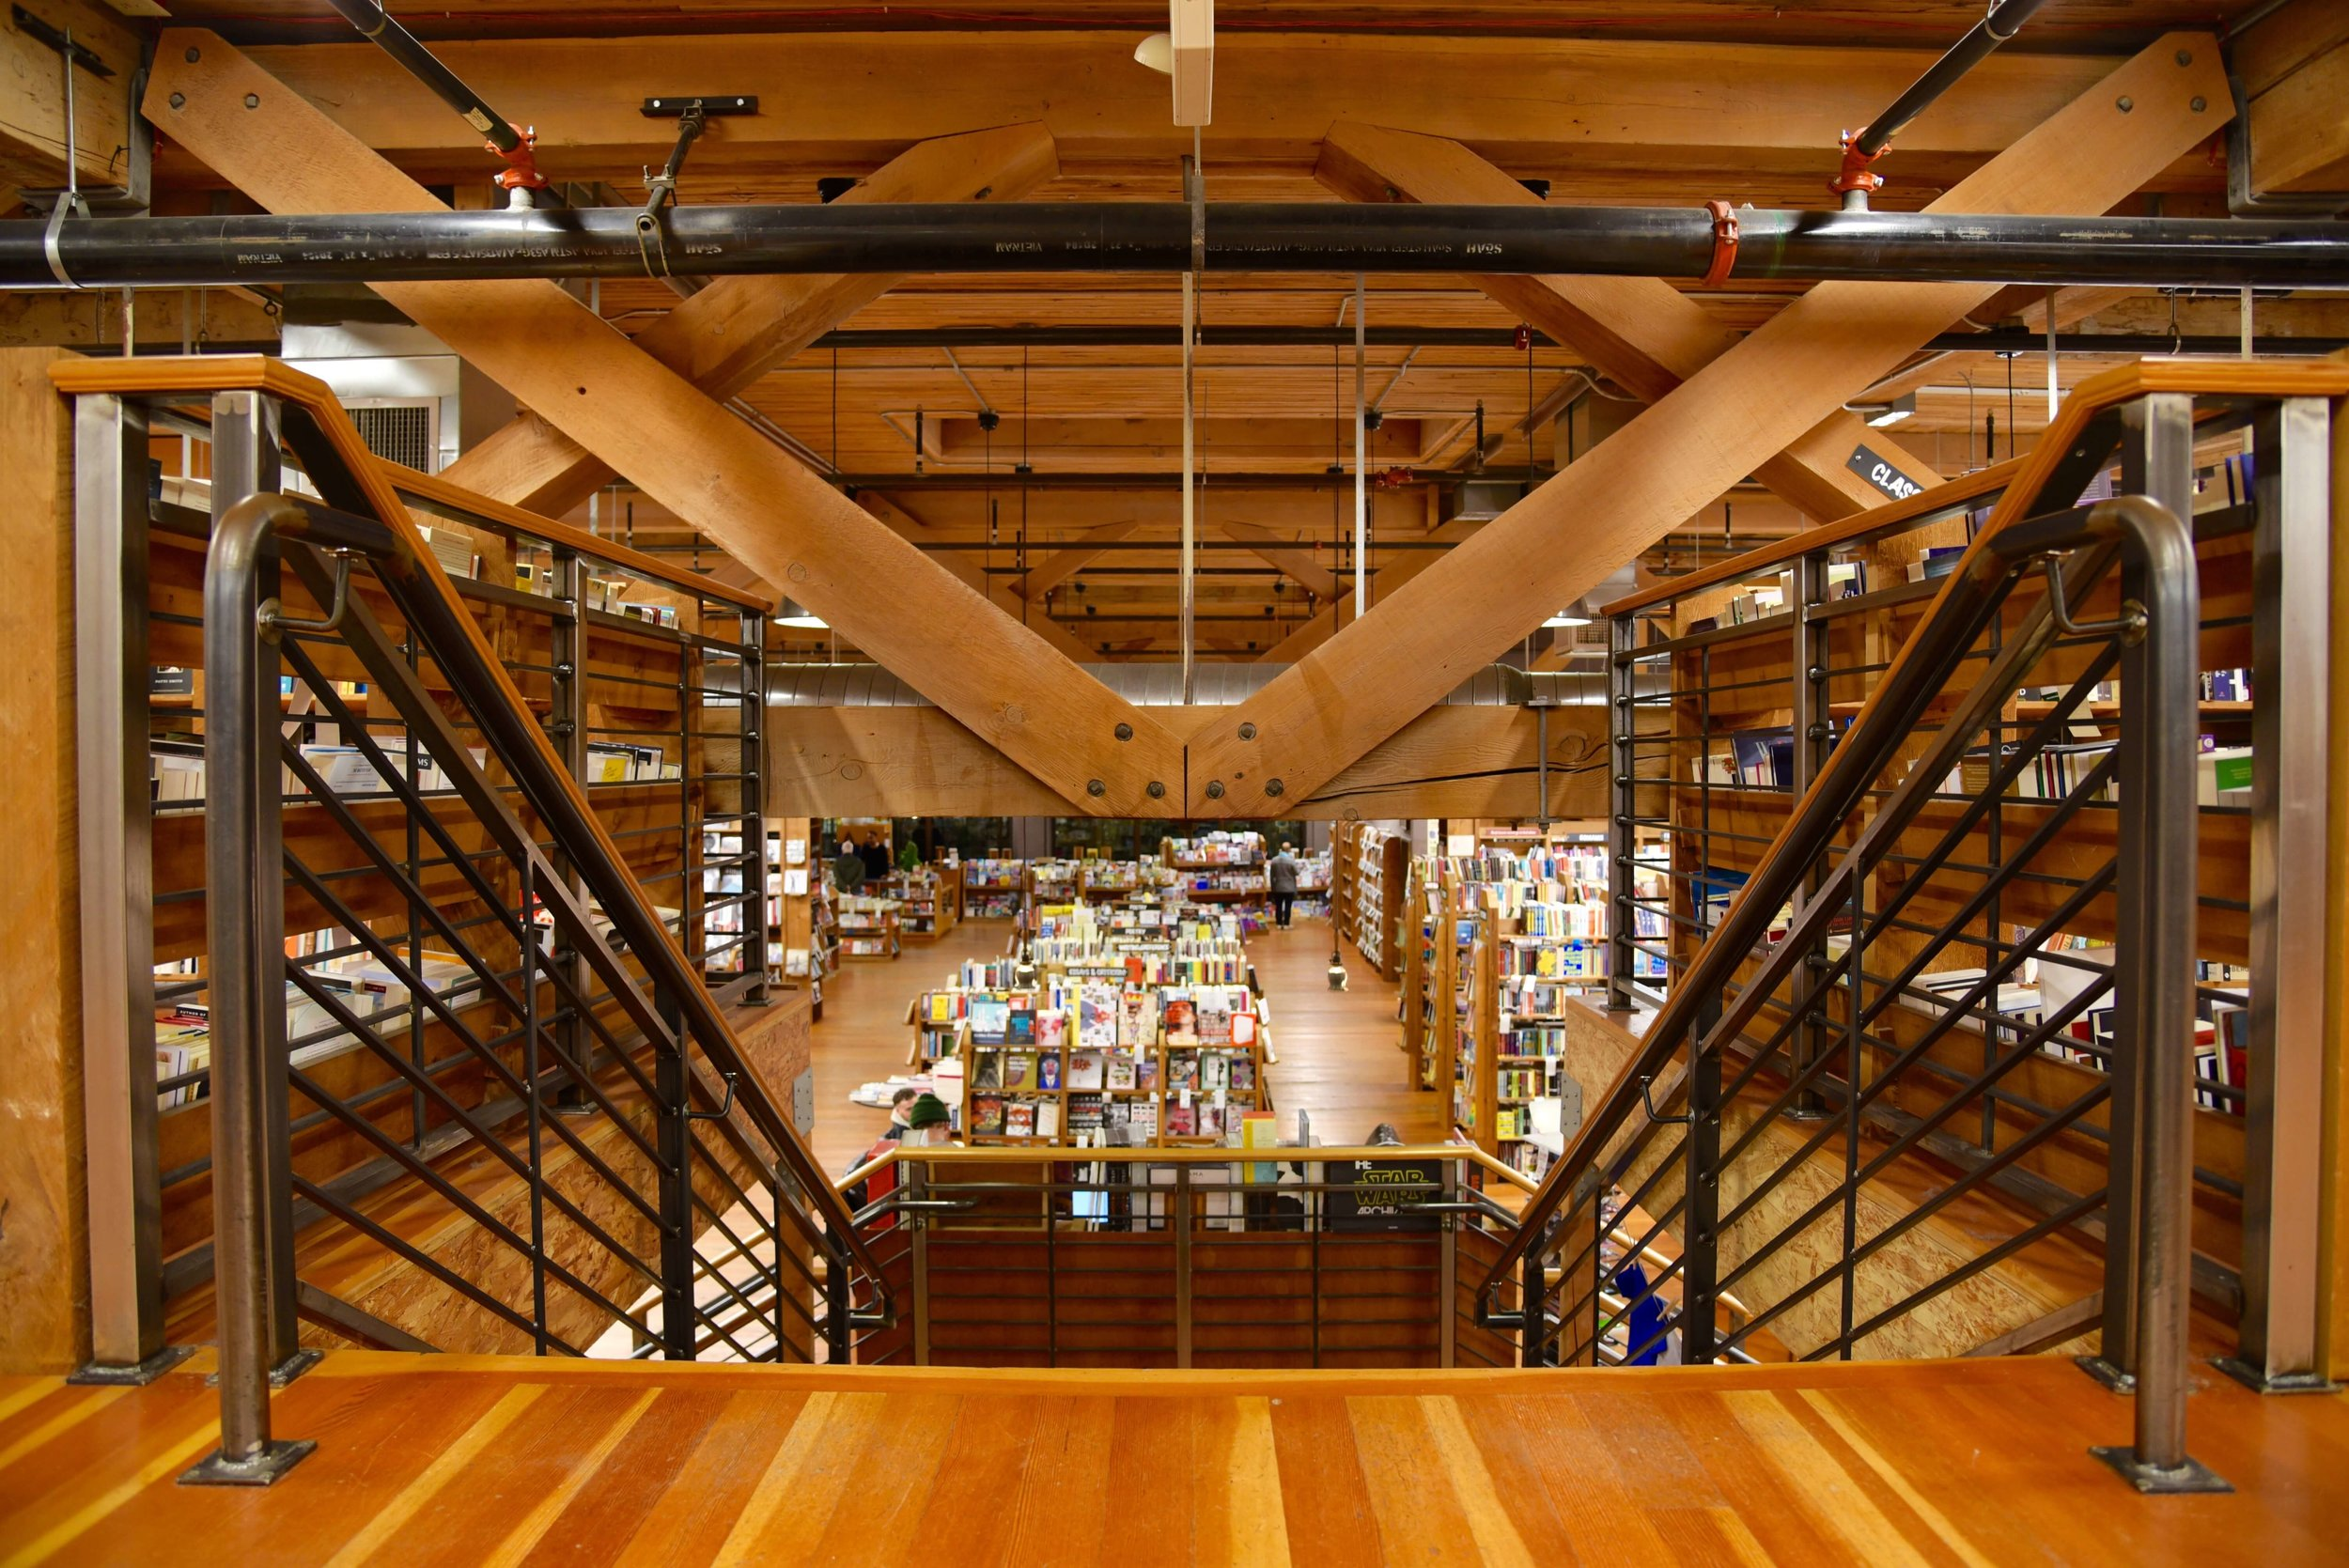 Seattle S Best Bookstore The Elliot Bay Book Company Ramble State